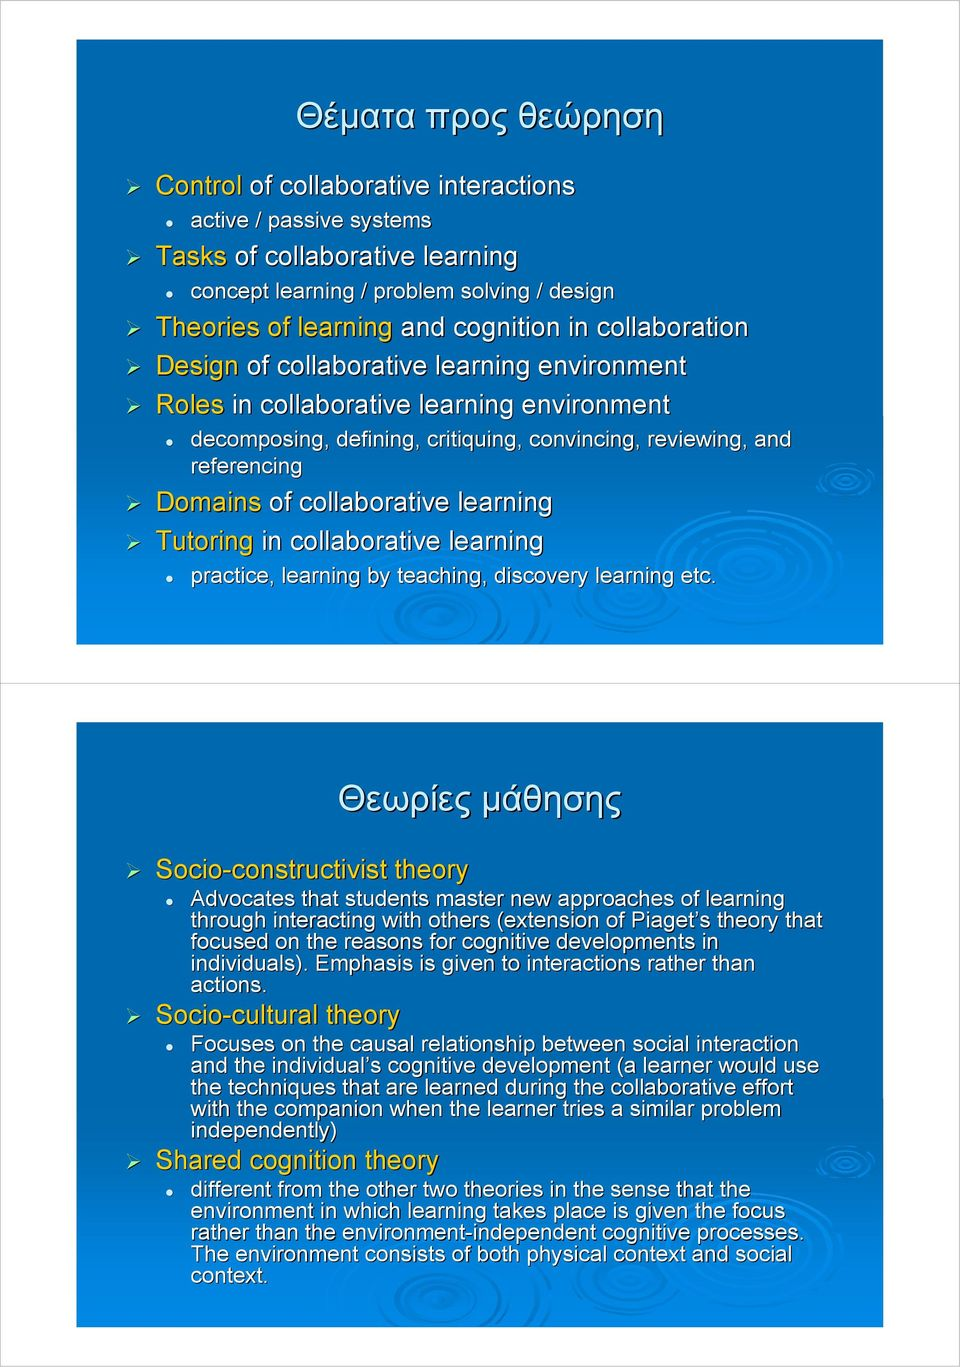 collaborative learning Tutoring in collaborative learning practice, learning by teaching, discovery learning etc.